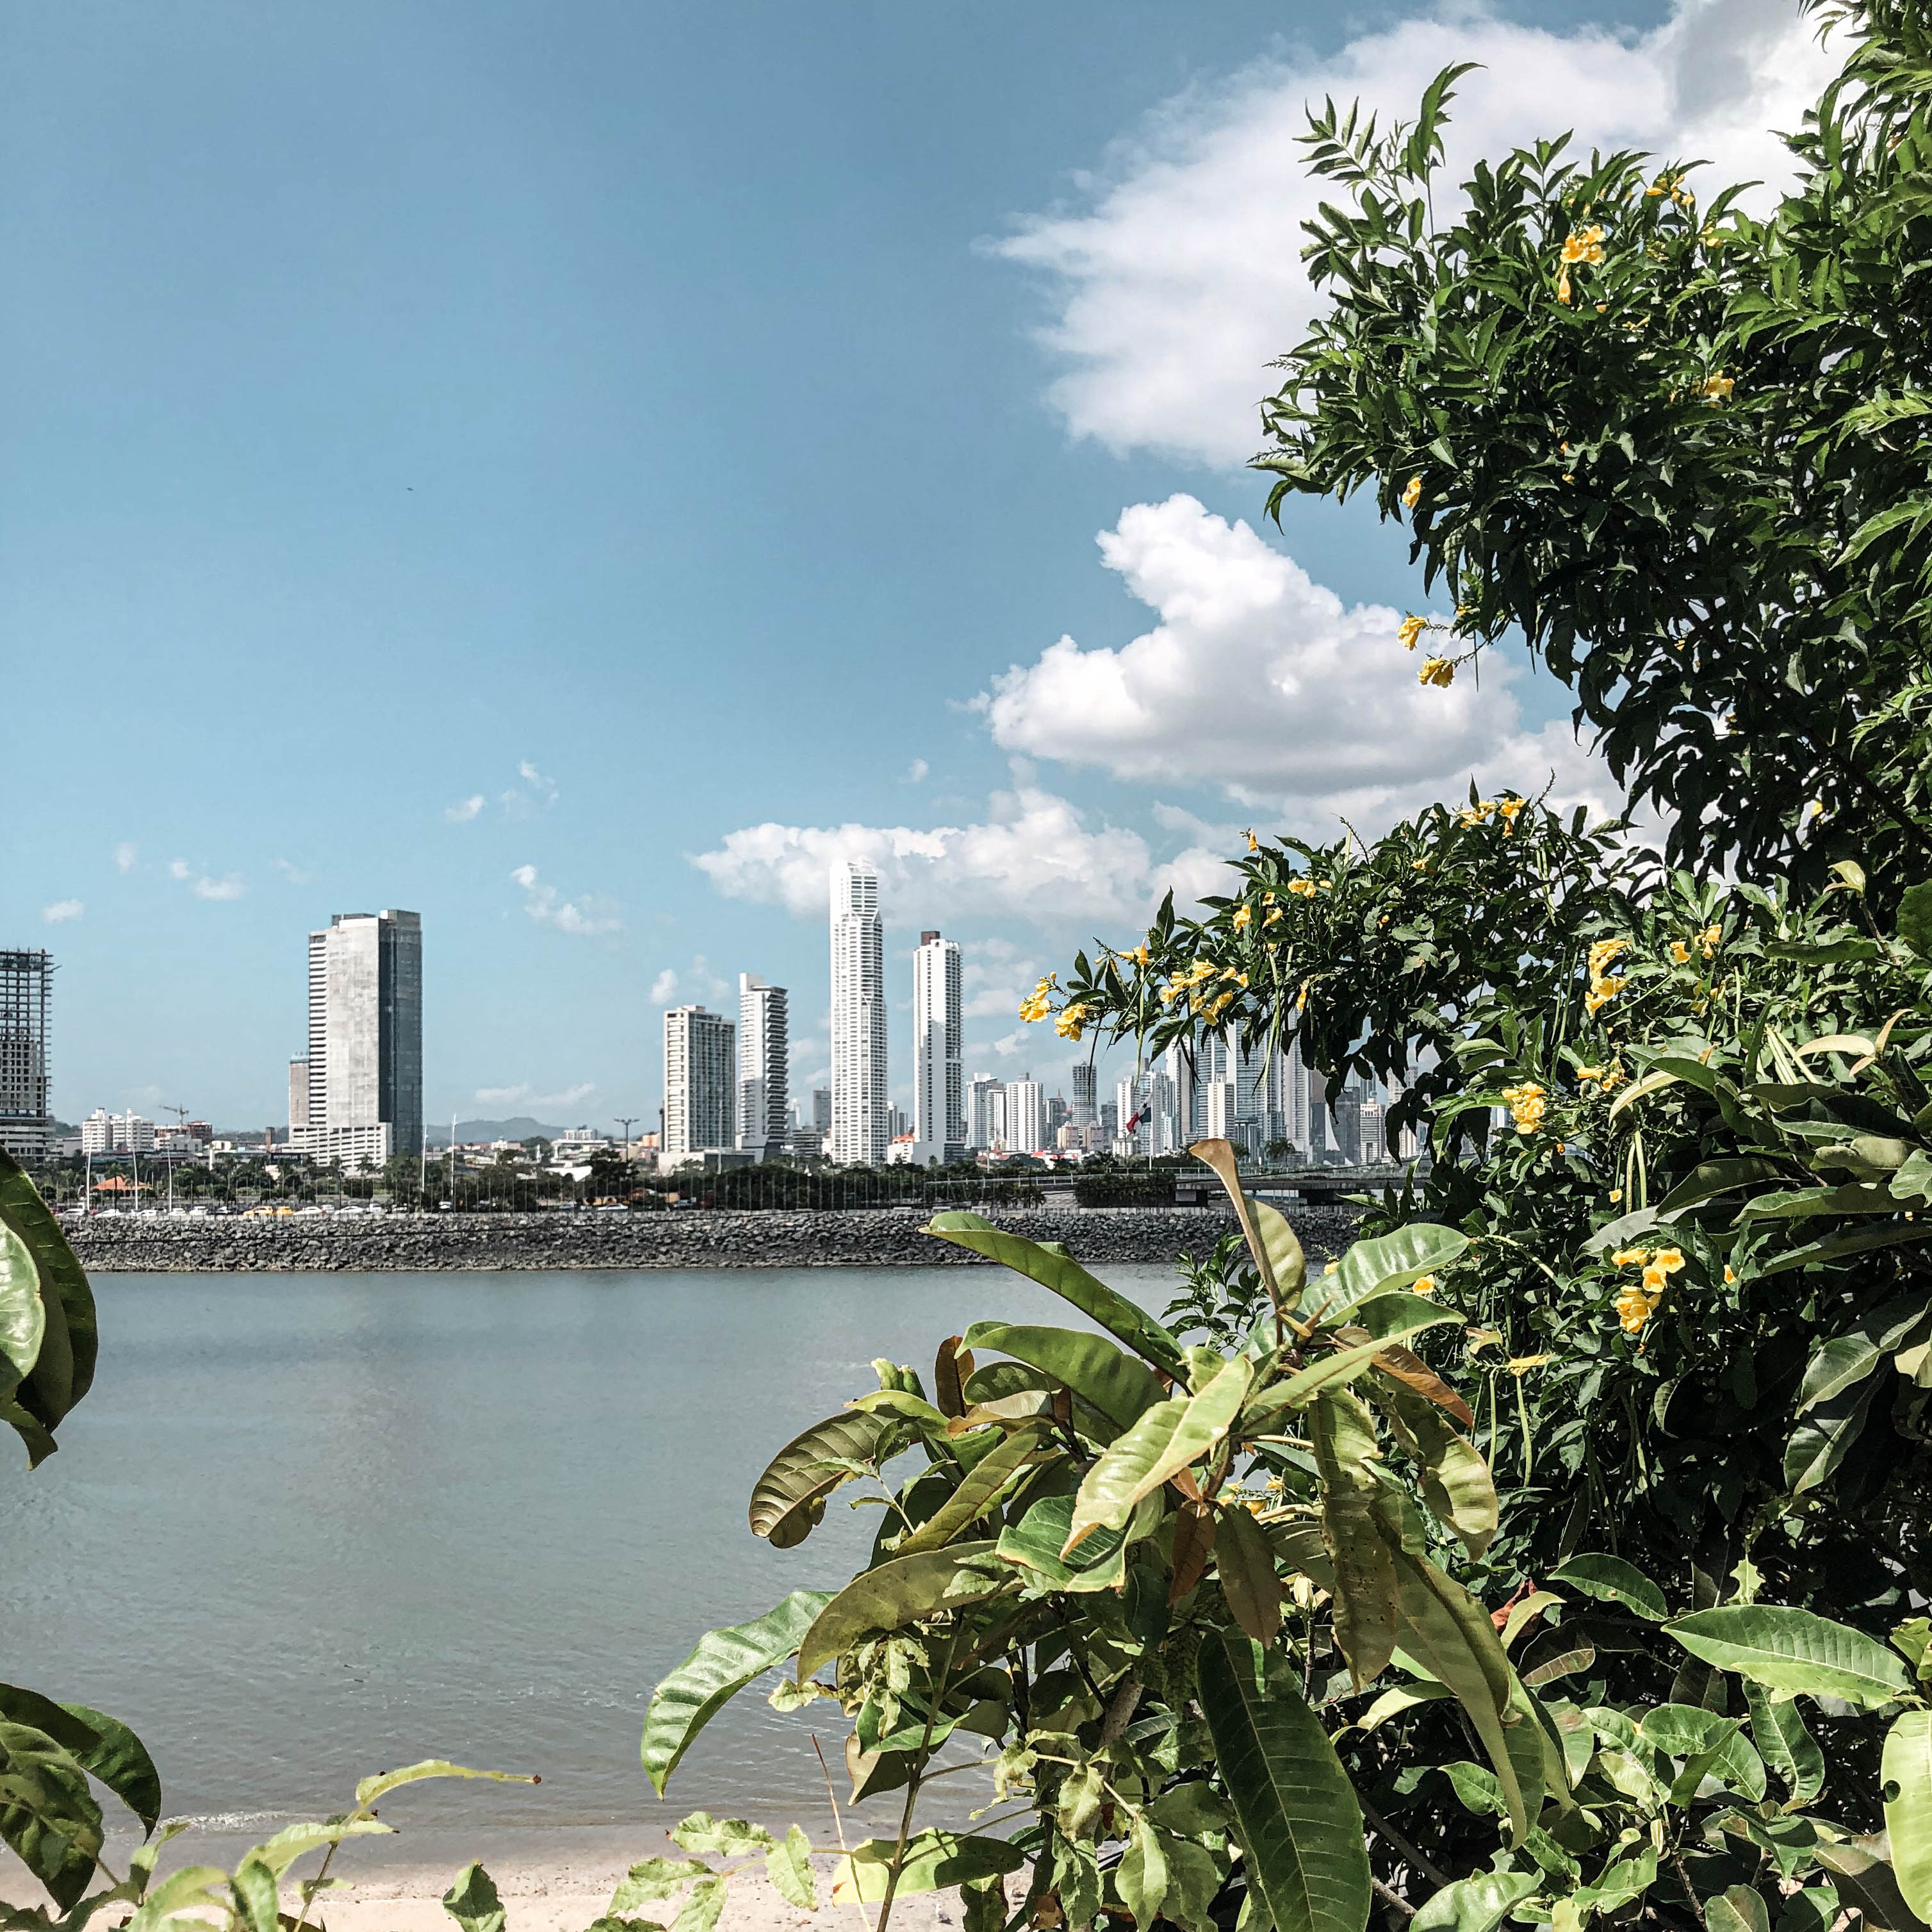 Casco Viejo - View of Panama City Skyline